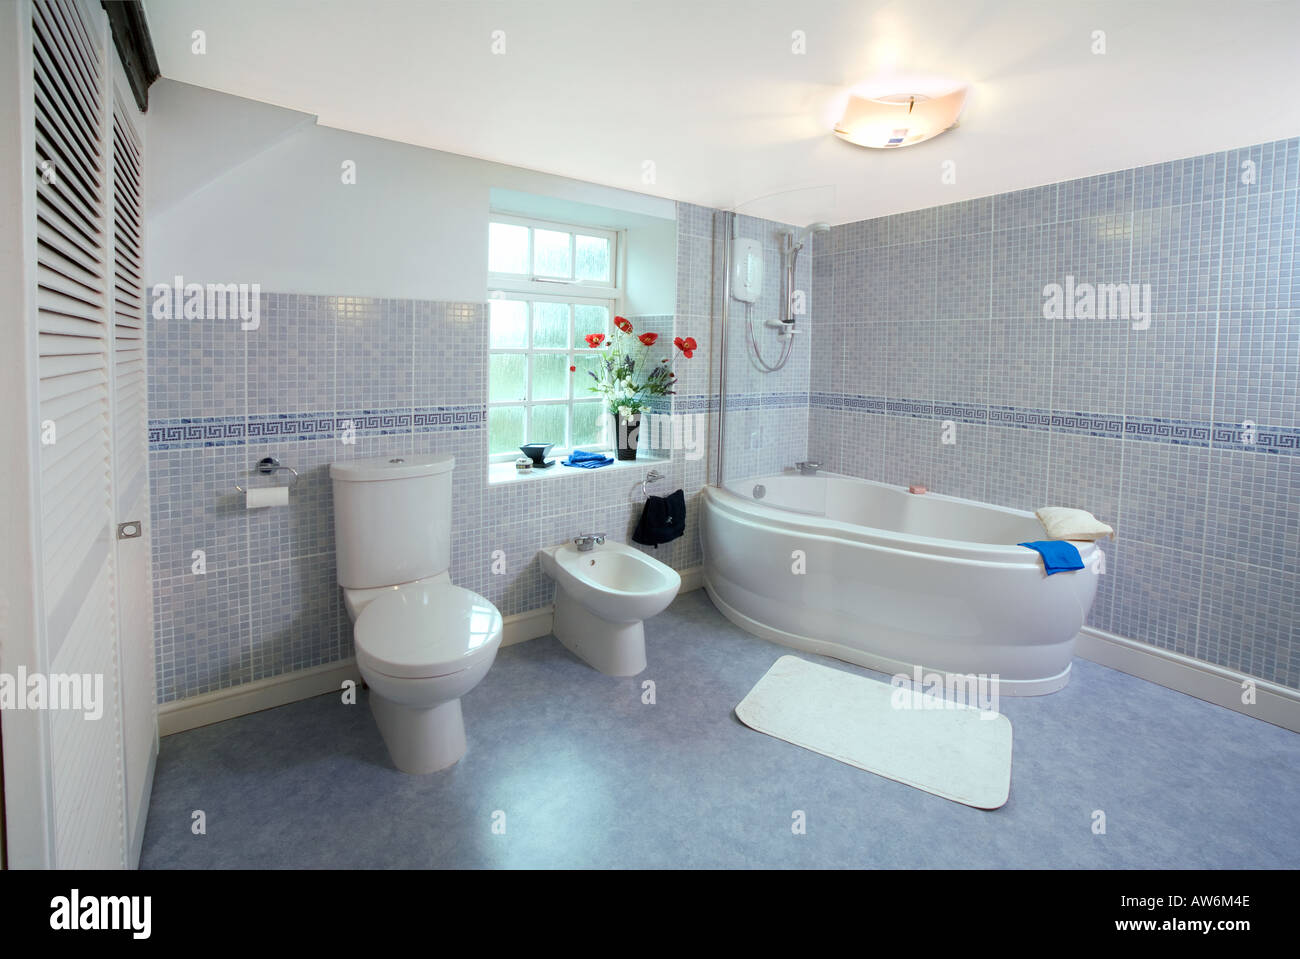 MODERN TILED BATHROOM UK WITH BATH BIDET AND TOILET Stock Photo ...